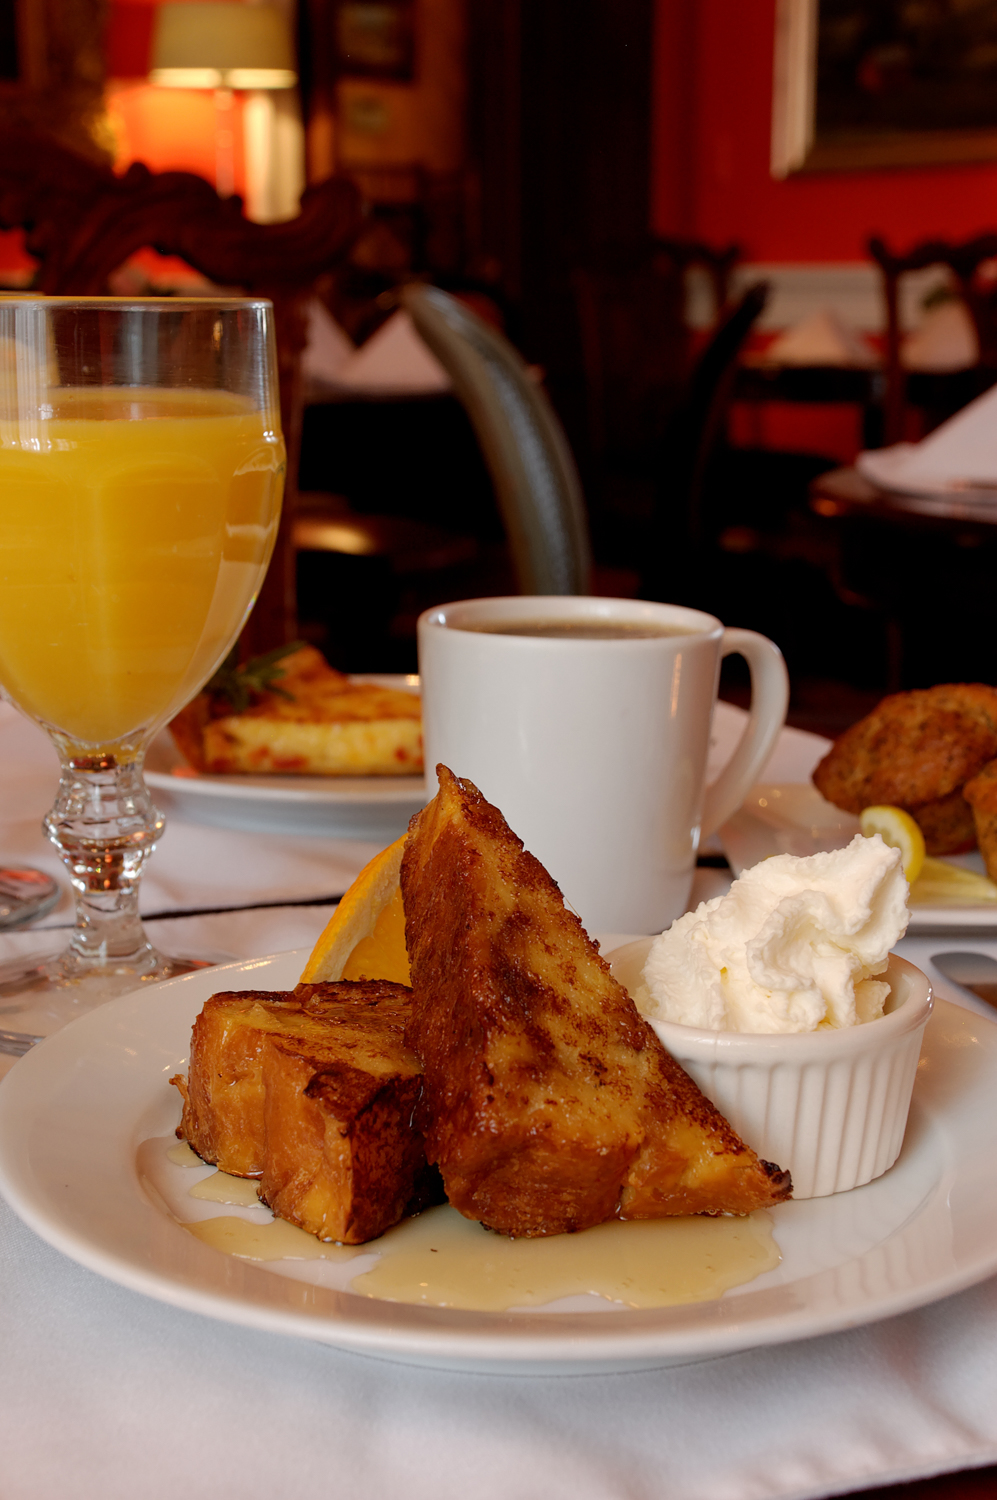 Breakfast at The Inn at Court Square